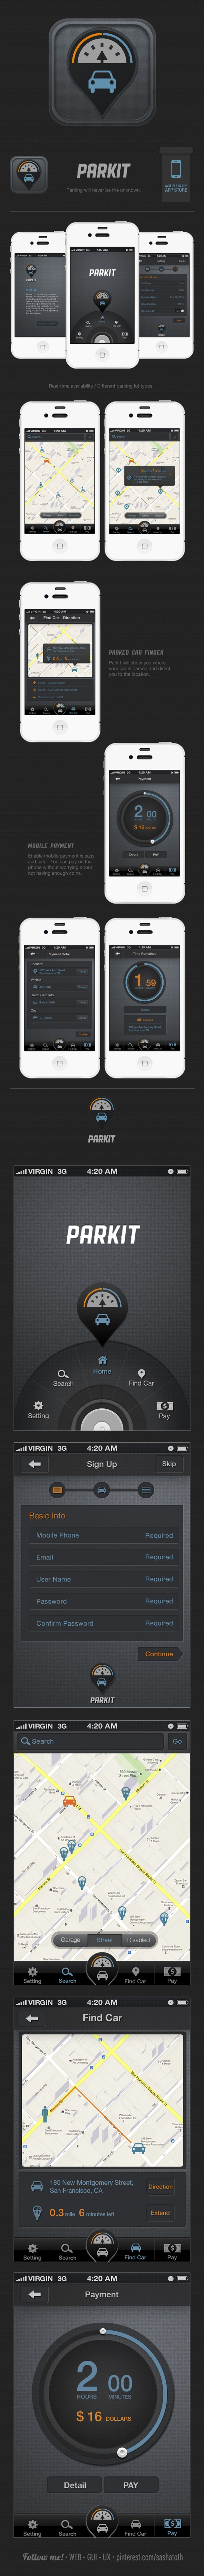 Parkit - iphone UX / UI design by Fei Chang  via Behance *** #iphone #app #gui #ui